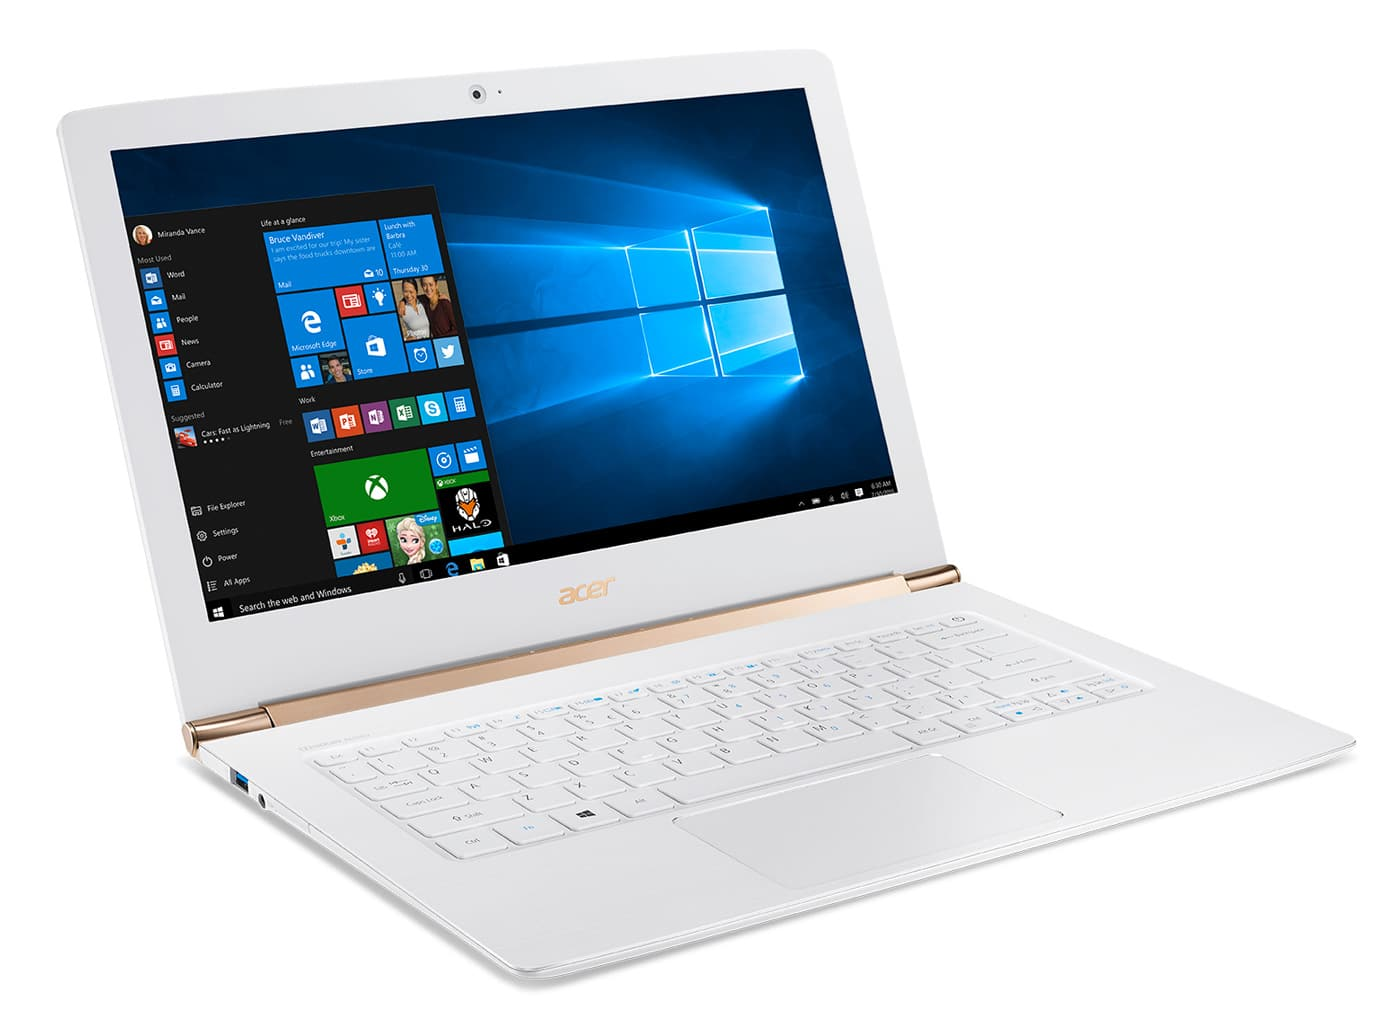 Acer Aspire S5-371-78YR à 799€, Ultrabook 13 pouces Full IPS SSD 256 i7 8 Go